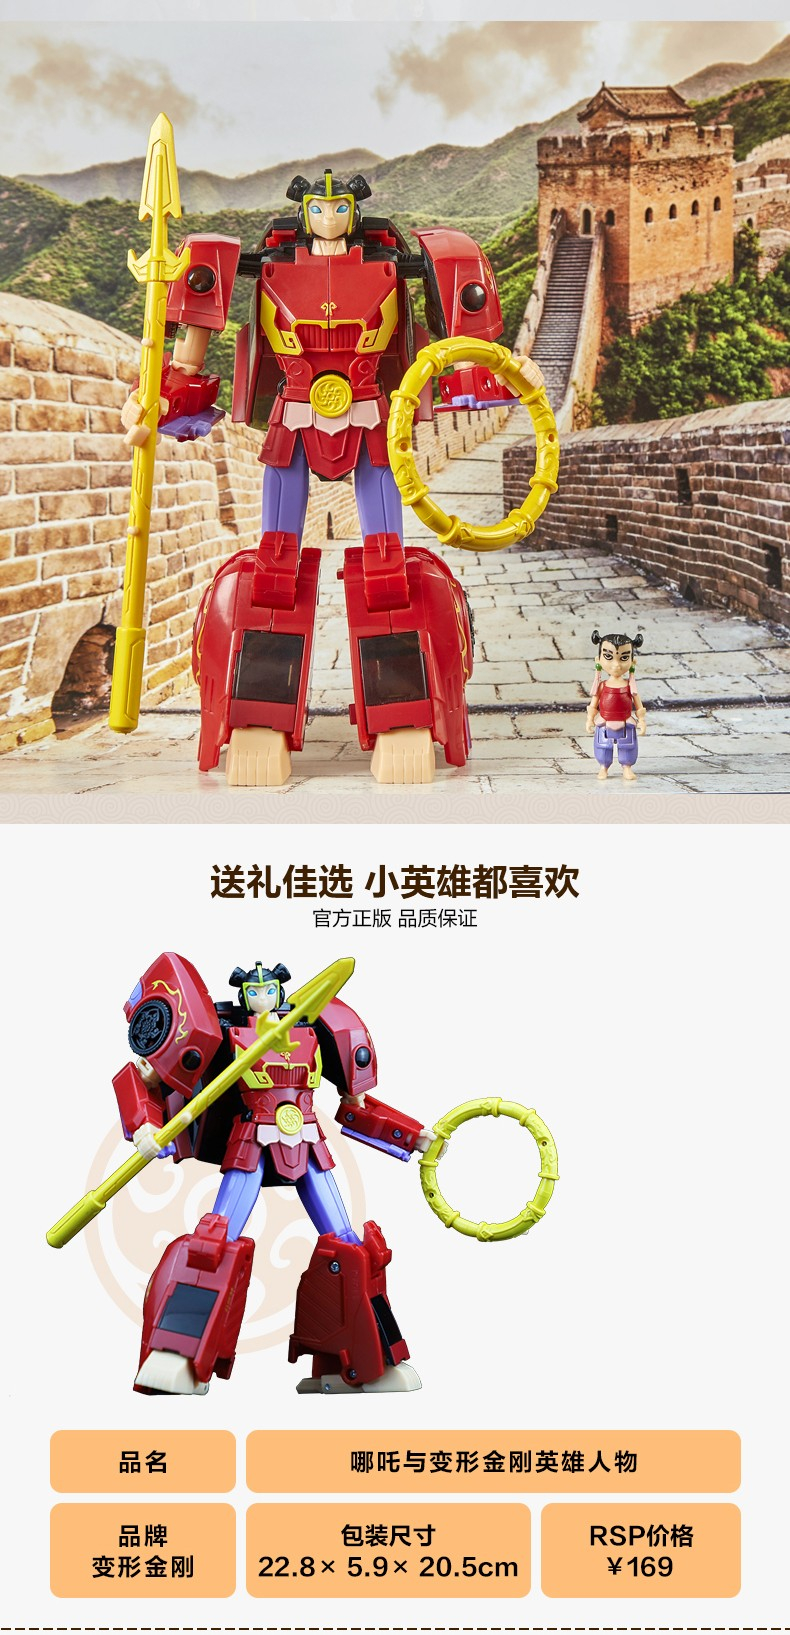 Transformers News: Official Images of Chinese Exclusive Transformers Nezha Toys and In Box Pic